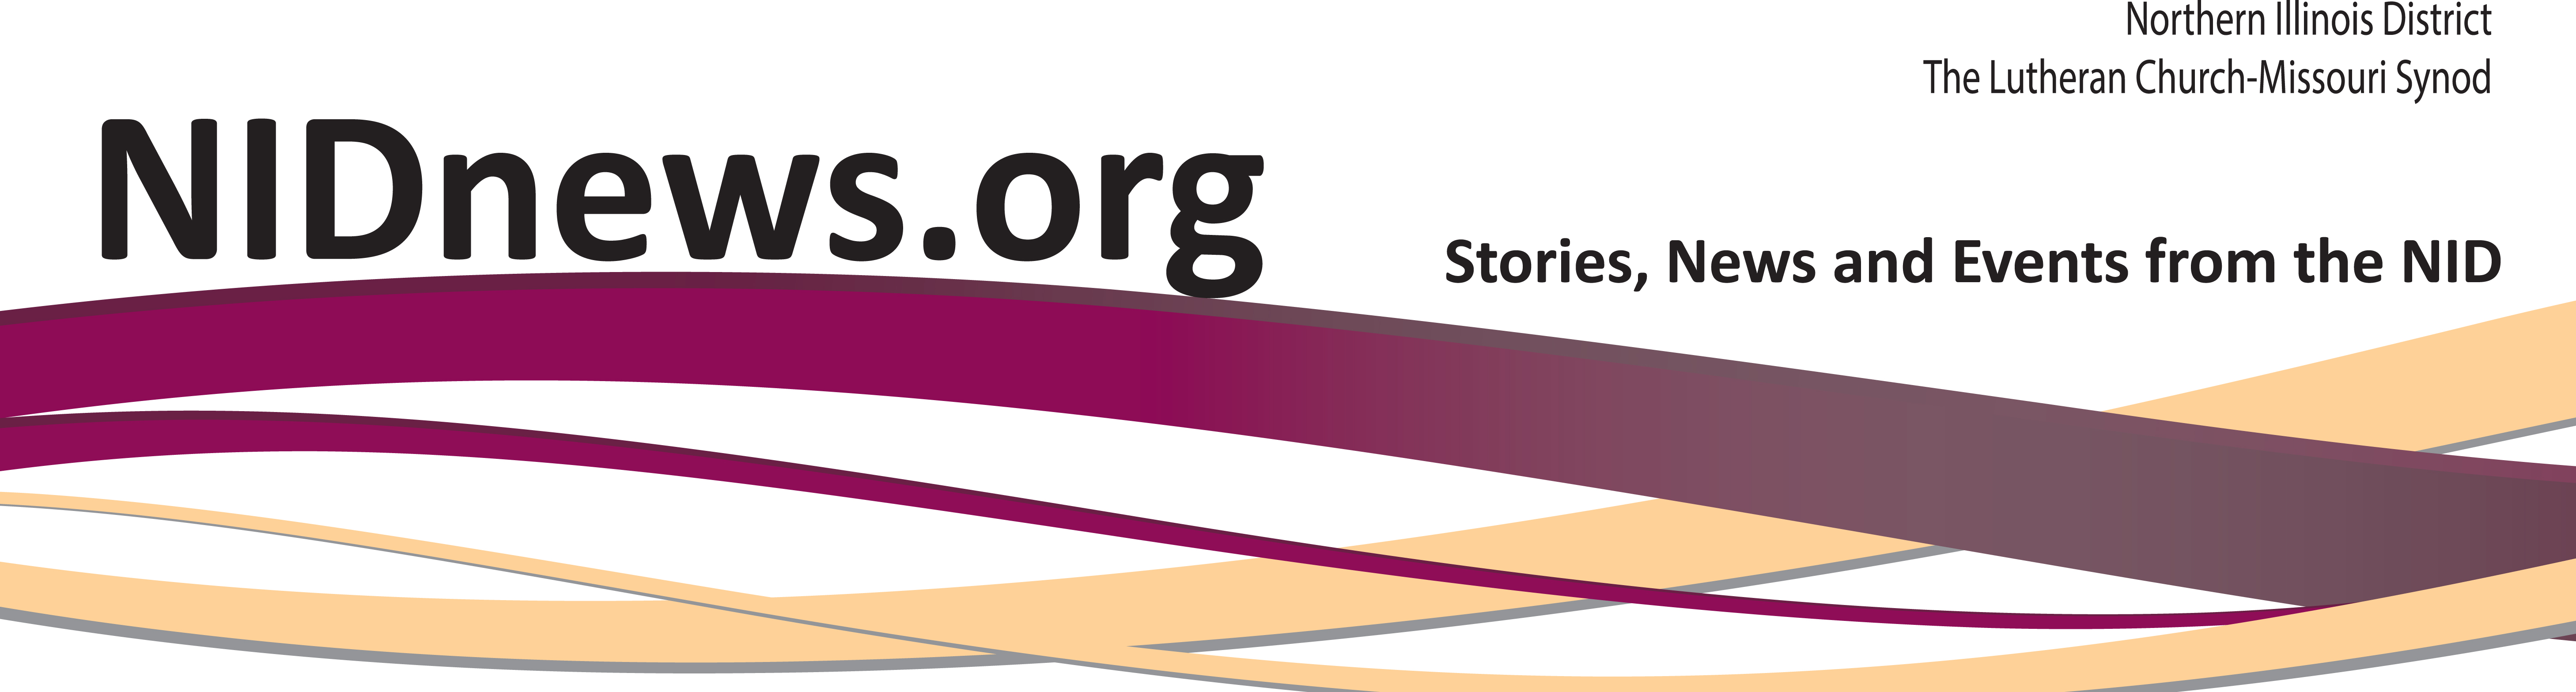 Stories, News & Events from Lutherans in Northern Illinois